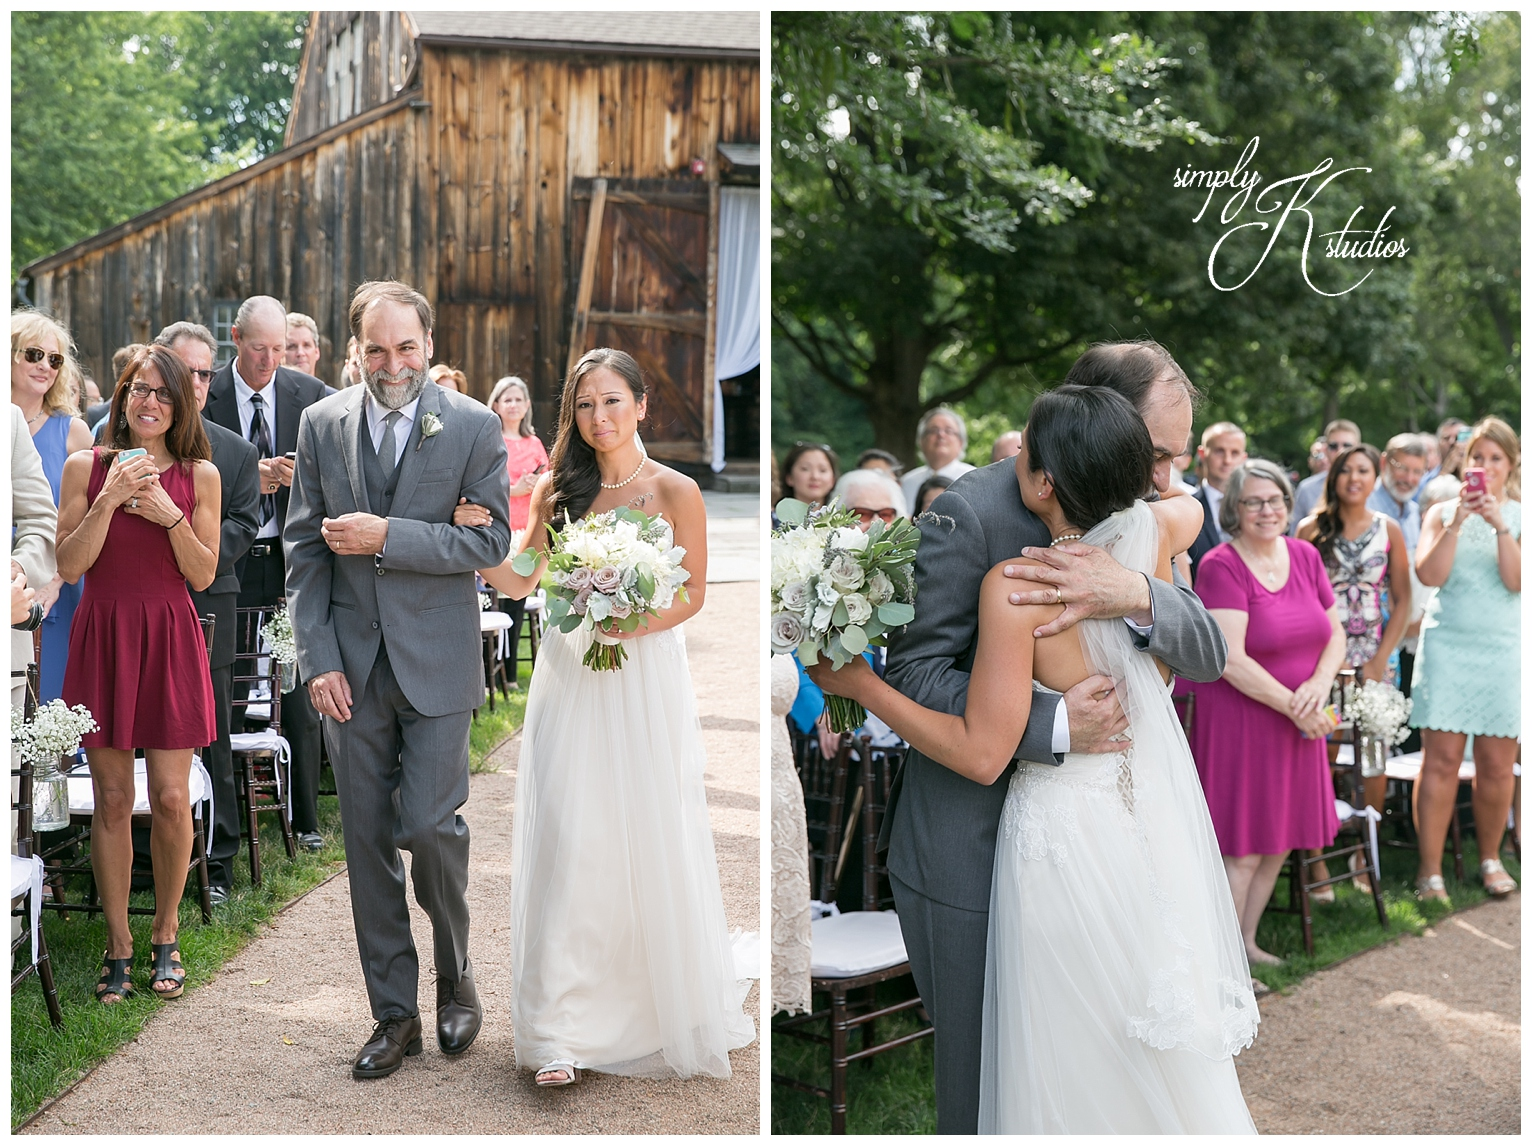 Simply K Studios Webb Barn Wedding Photographers.jpg